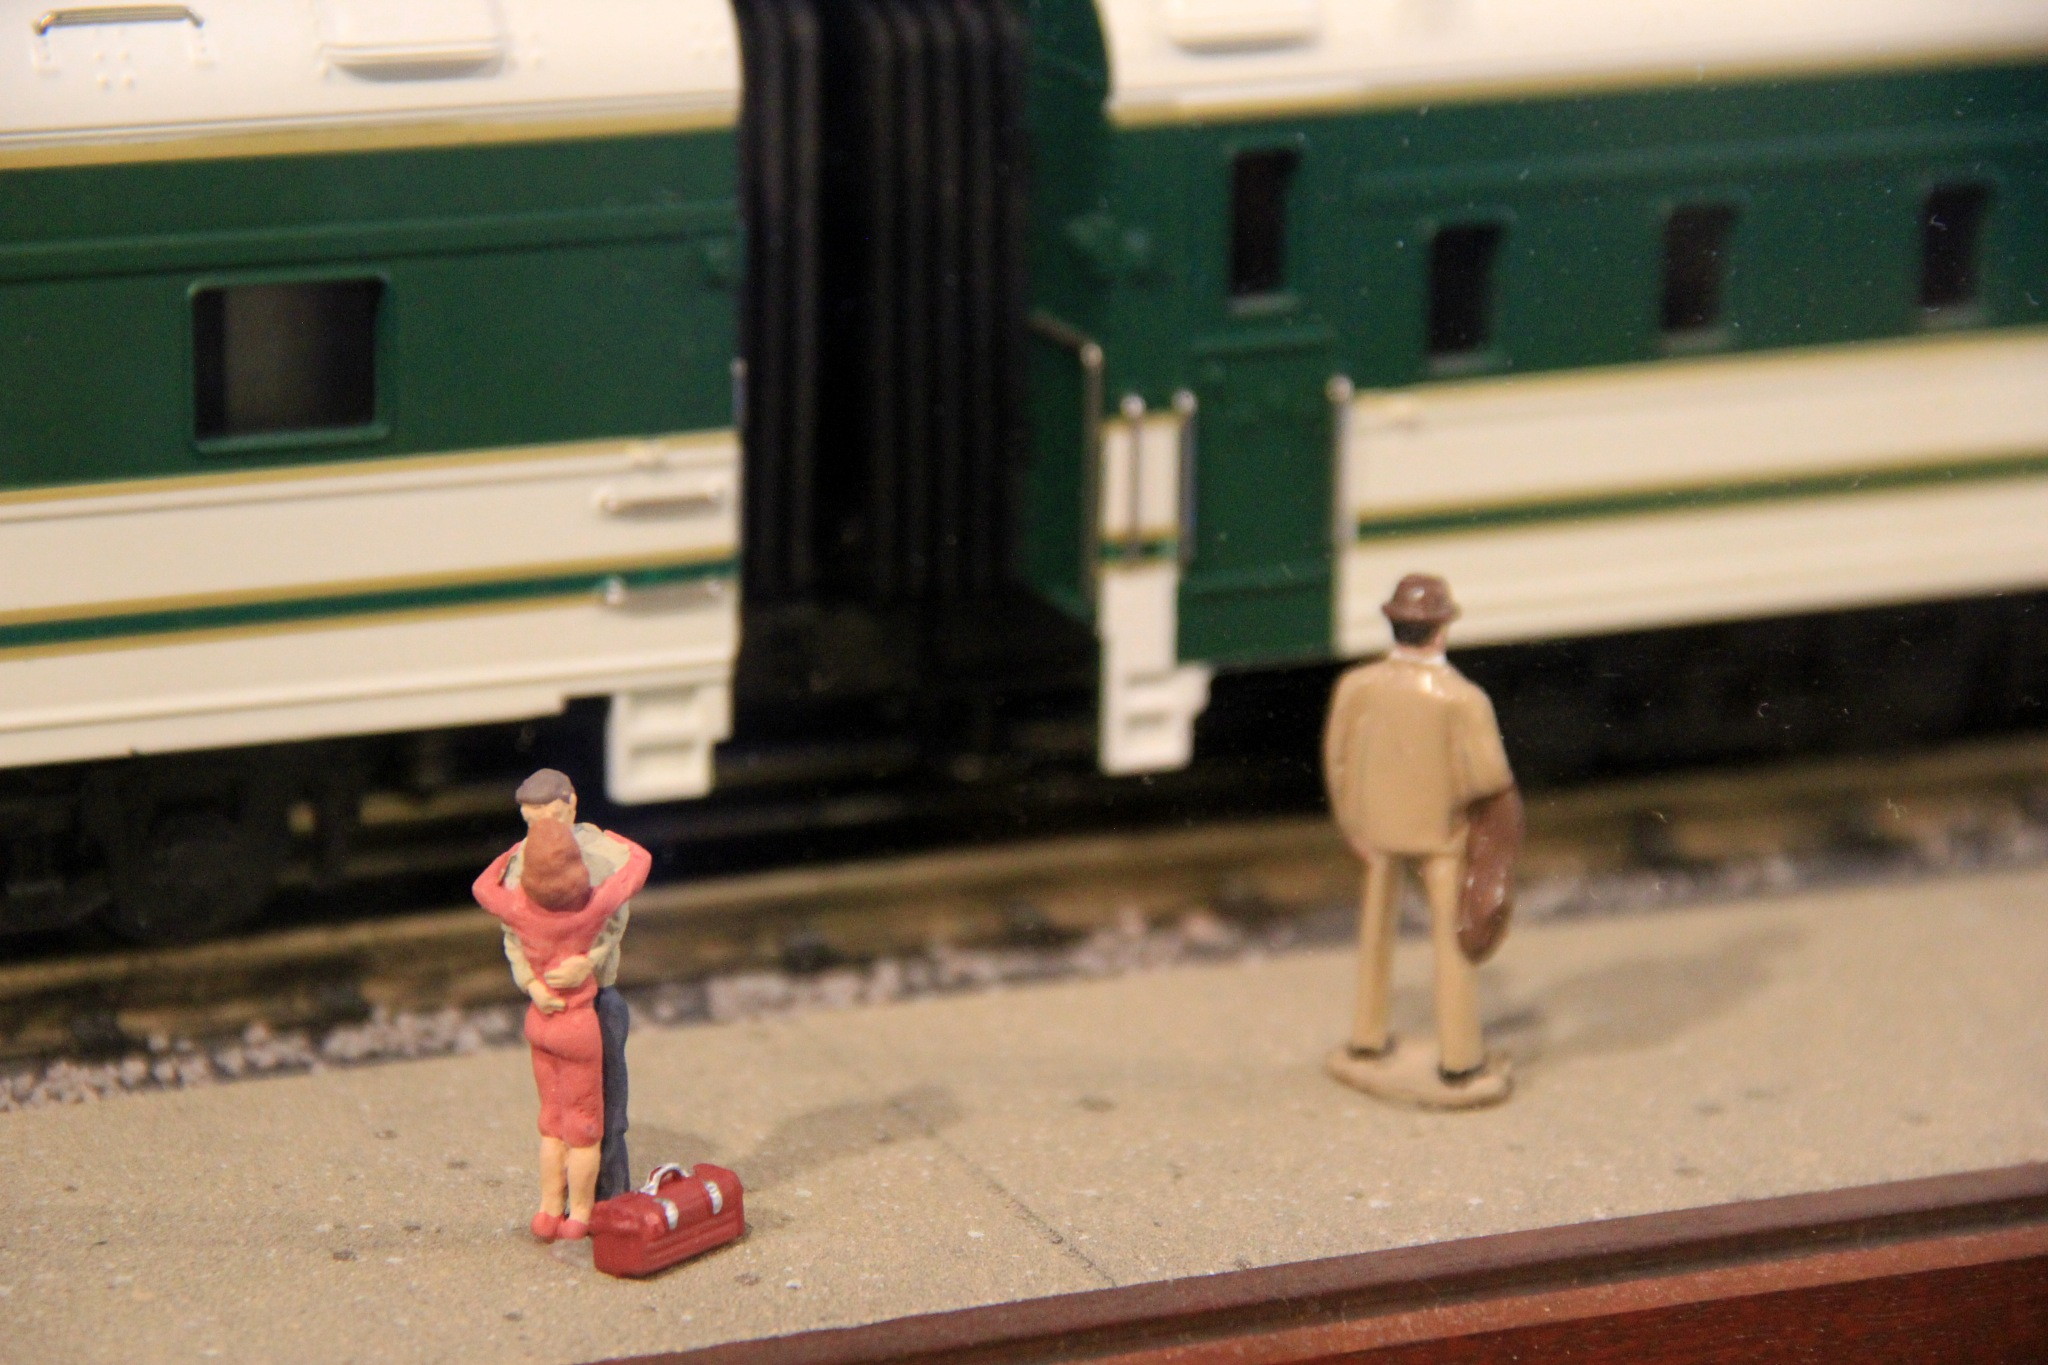 He kissed her goodbye, then climbed onto the train by theresaSt.john